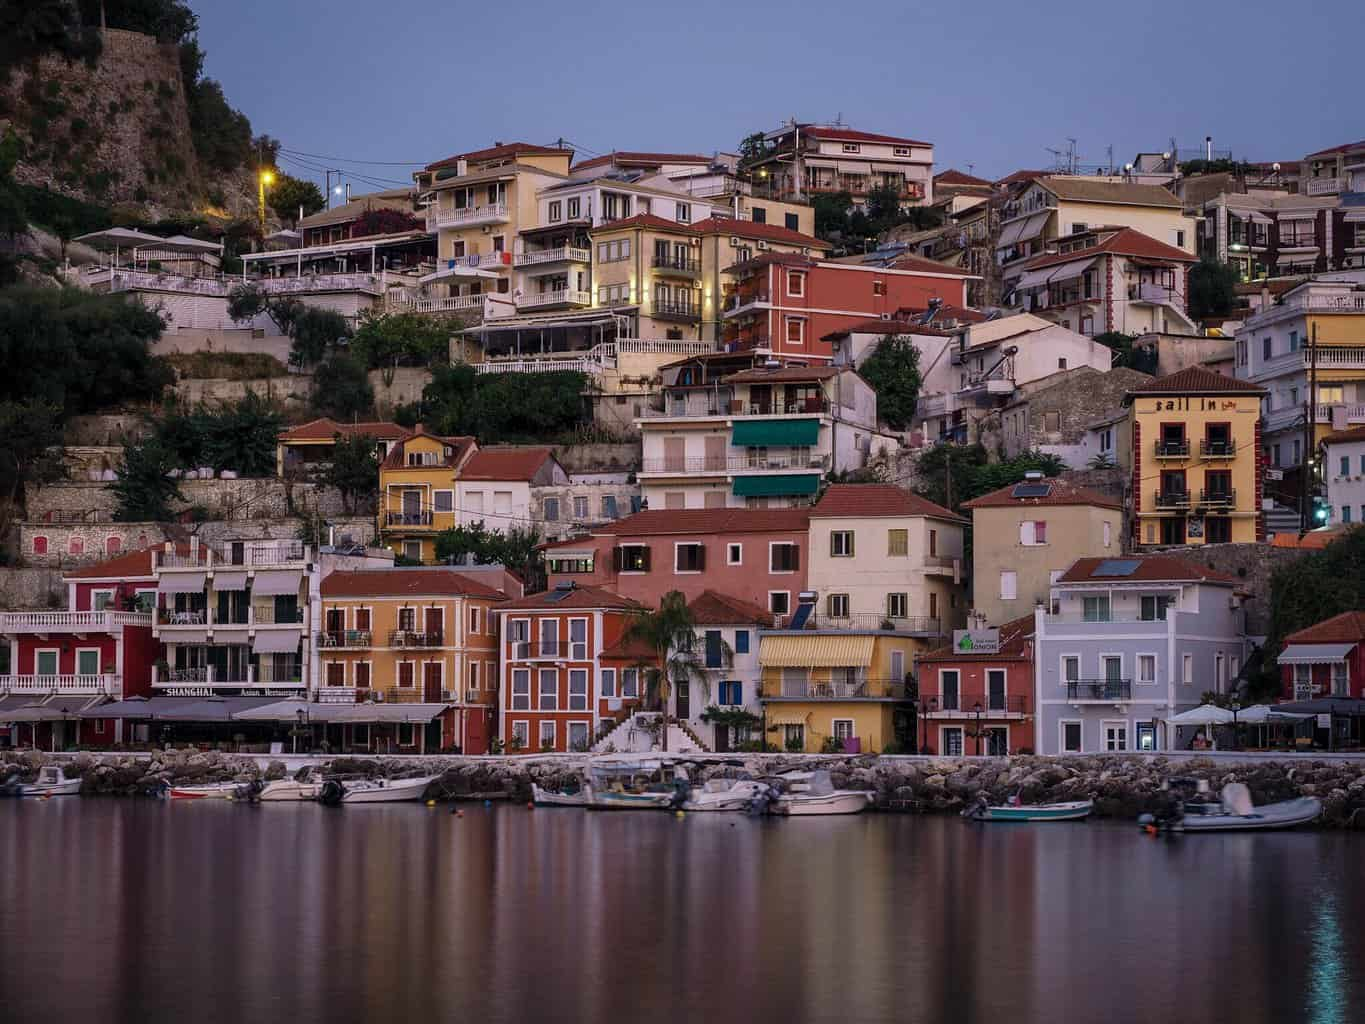 The lovely buildings of Parga in Greece